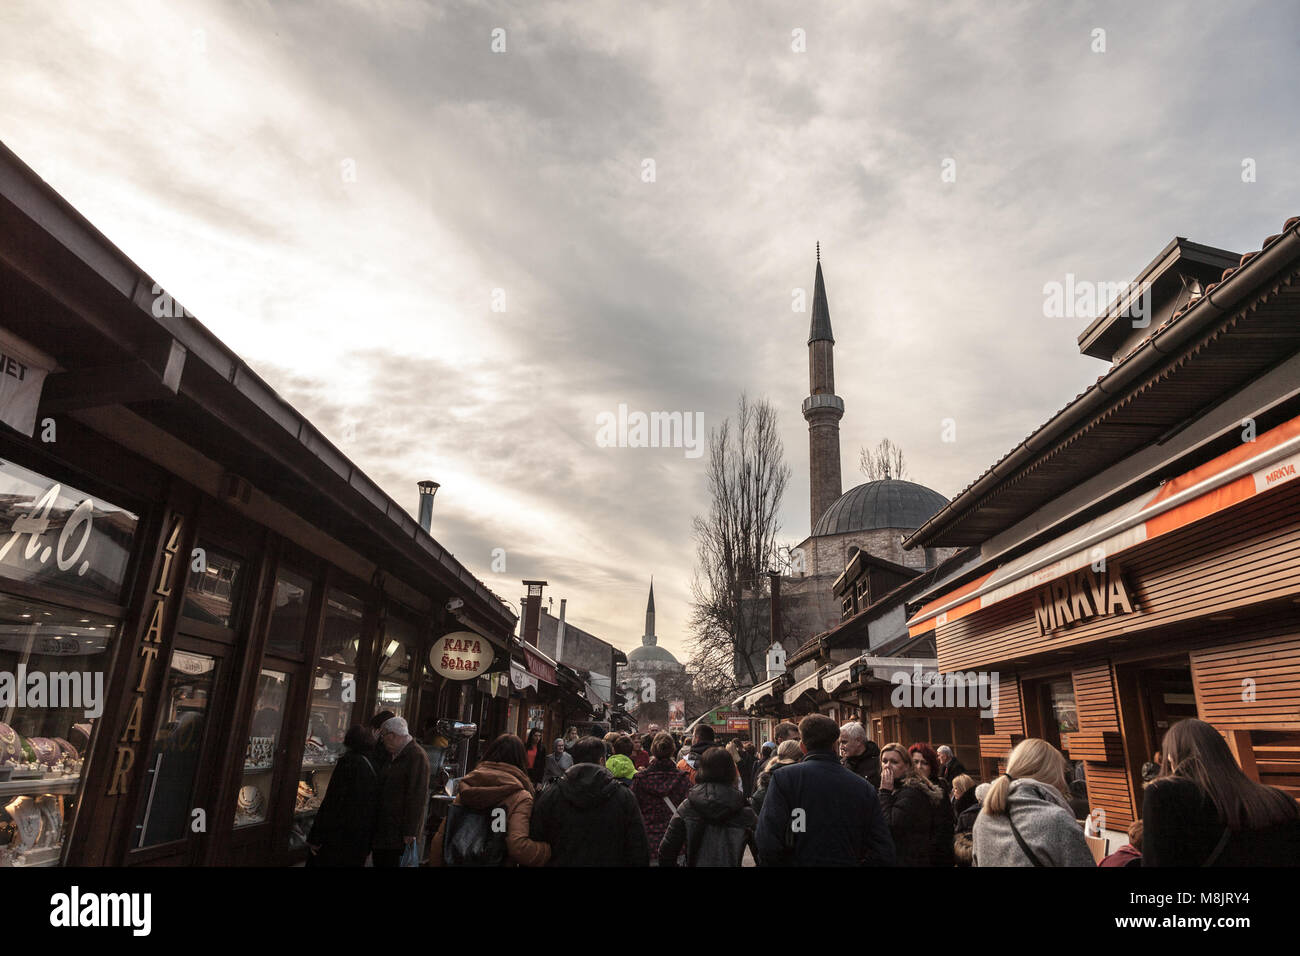 SARAJEVO, BOSNIA AND HERZEGOVINA - FEBRUARY 17, 2018: Street crowded with tourists and a Mosque Minaret in the Bascarsija - Stock Image